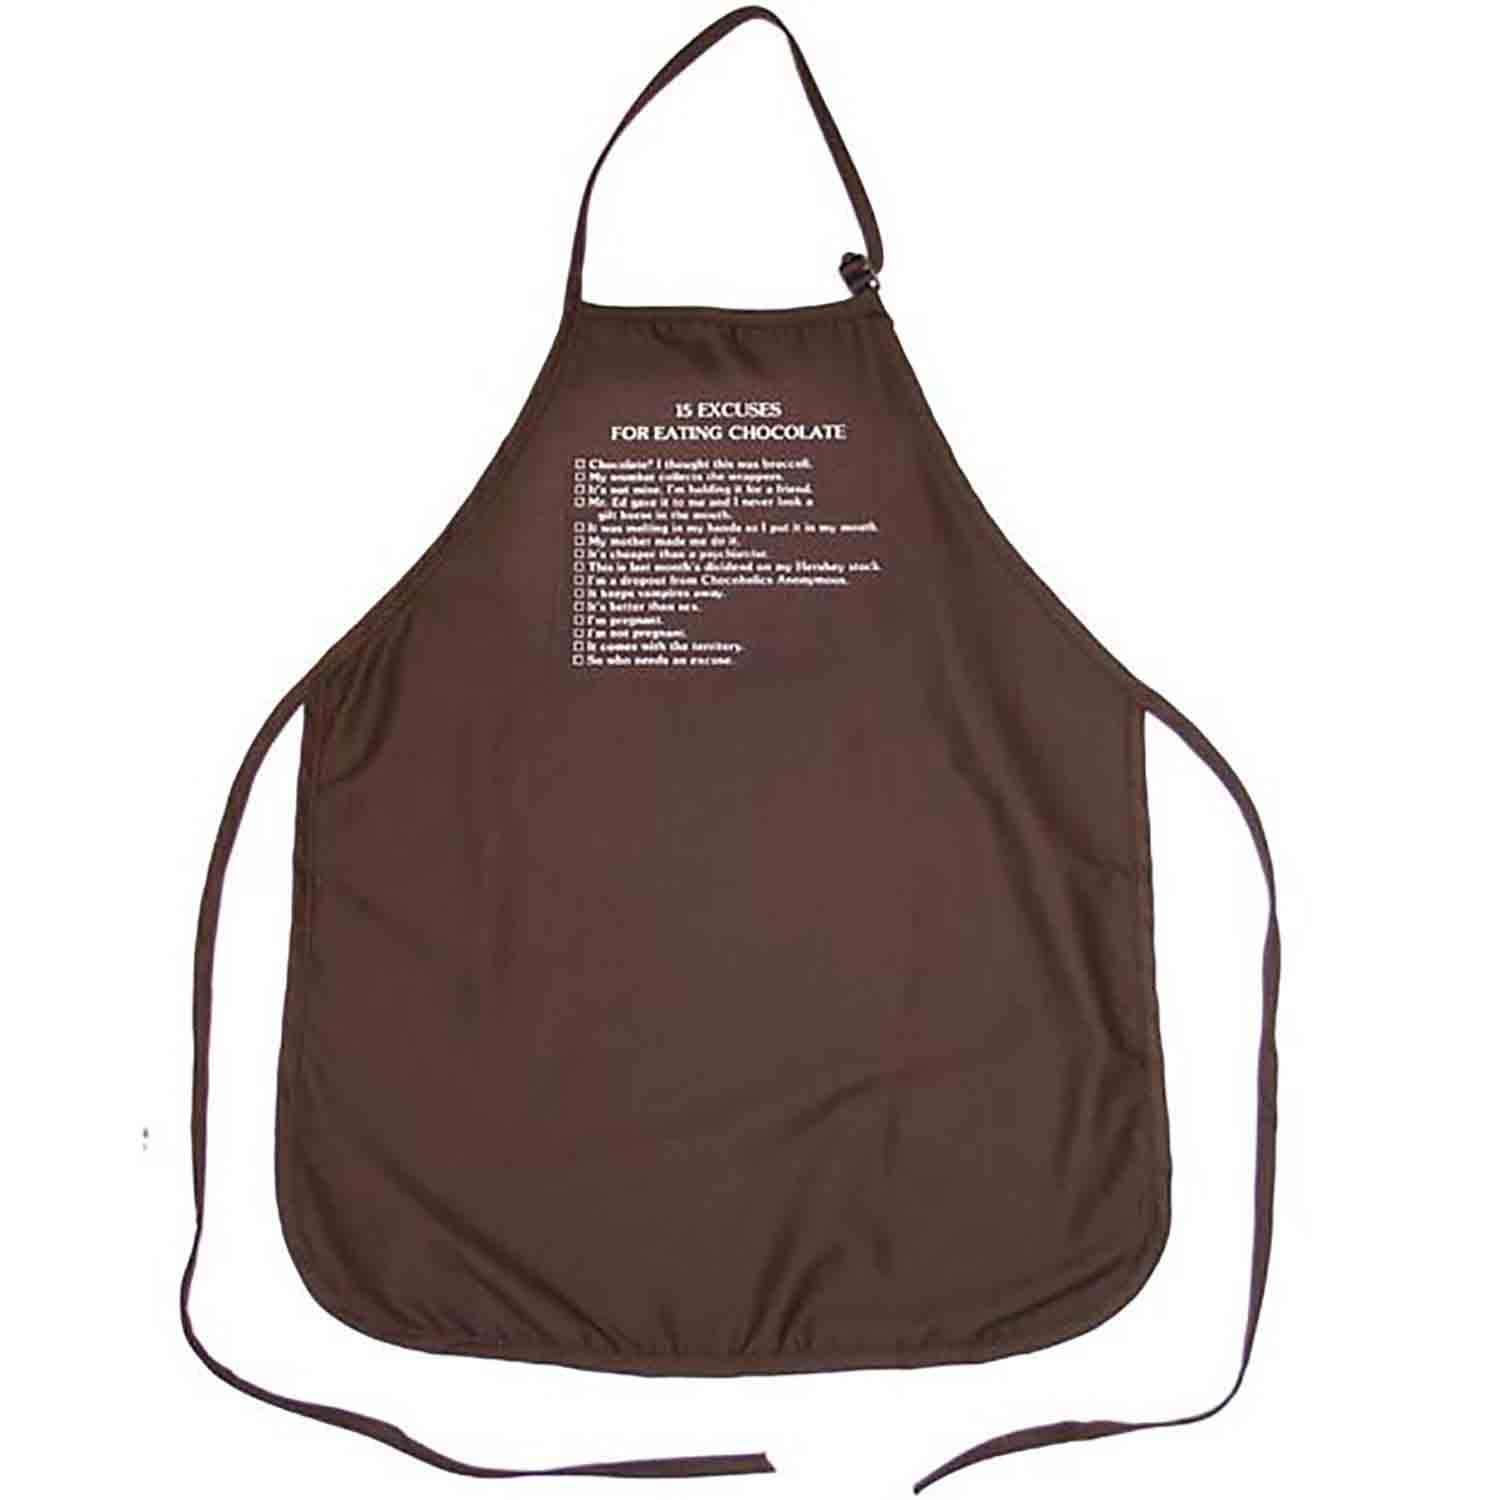 15 Excuses… Apron